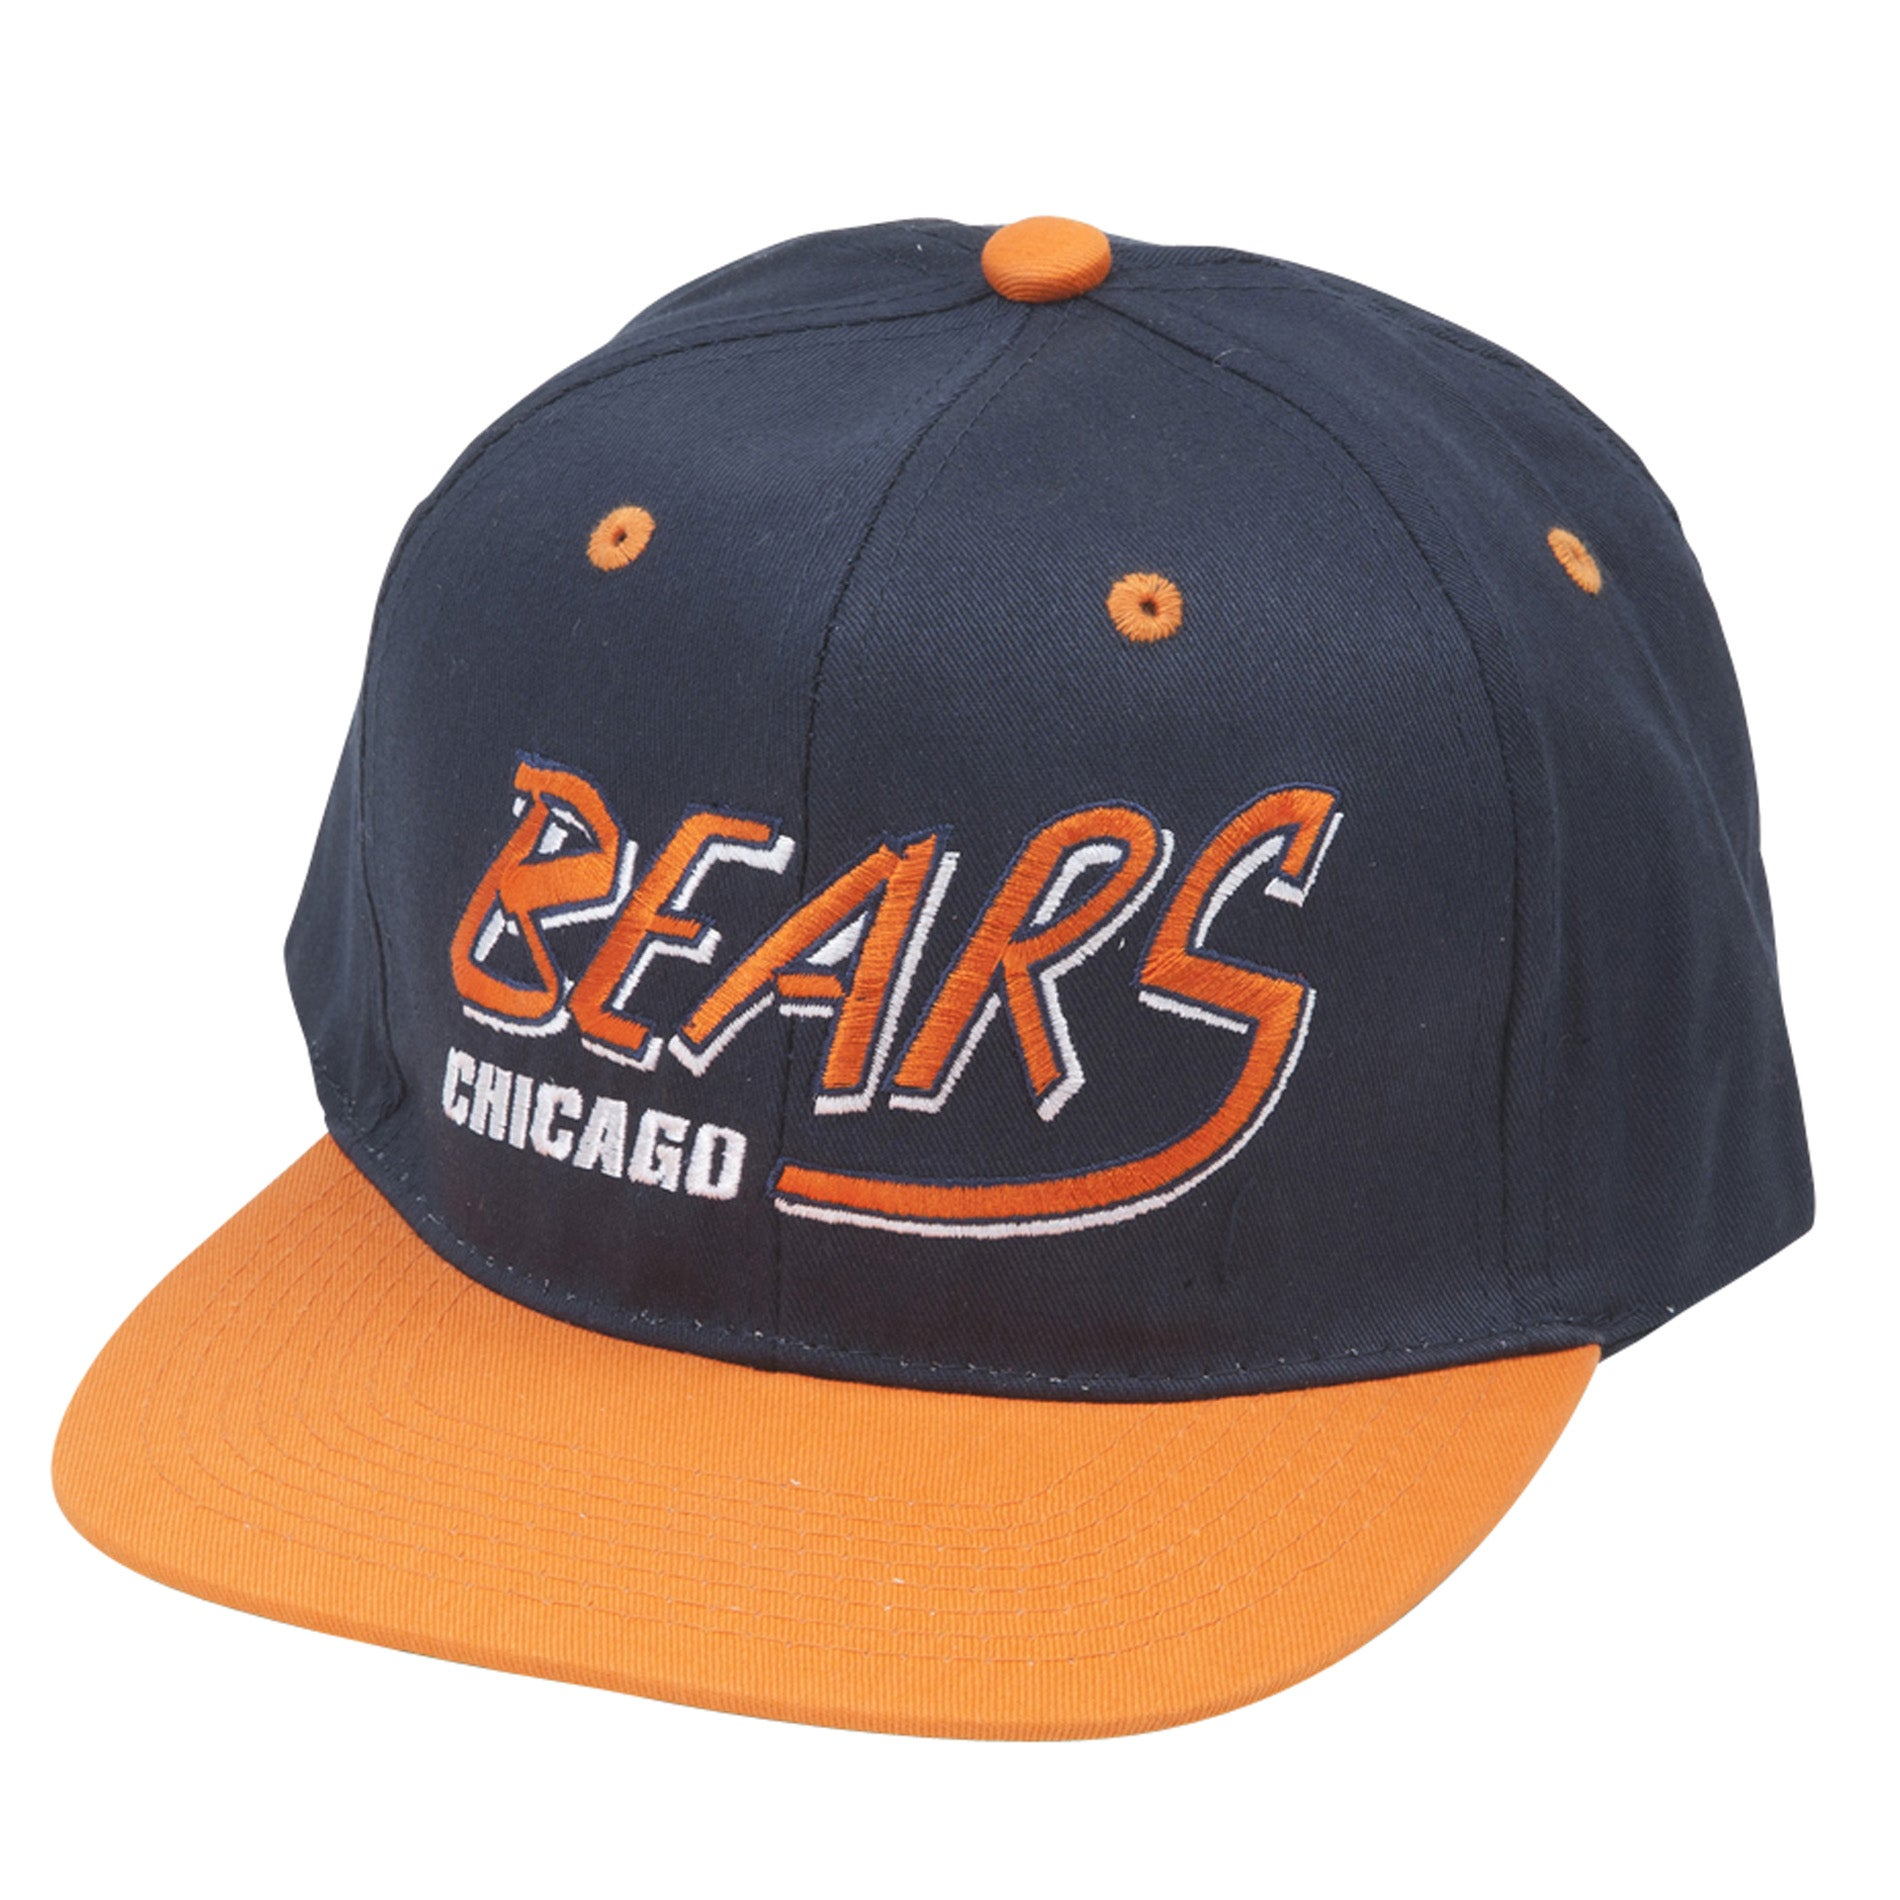 Chicago Bears Retro NFL Snapback Hat